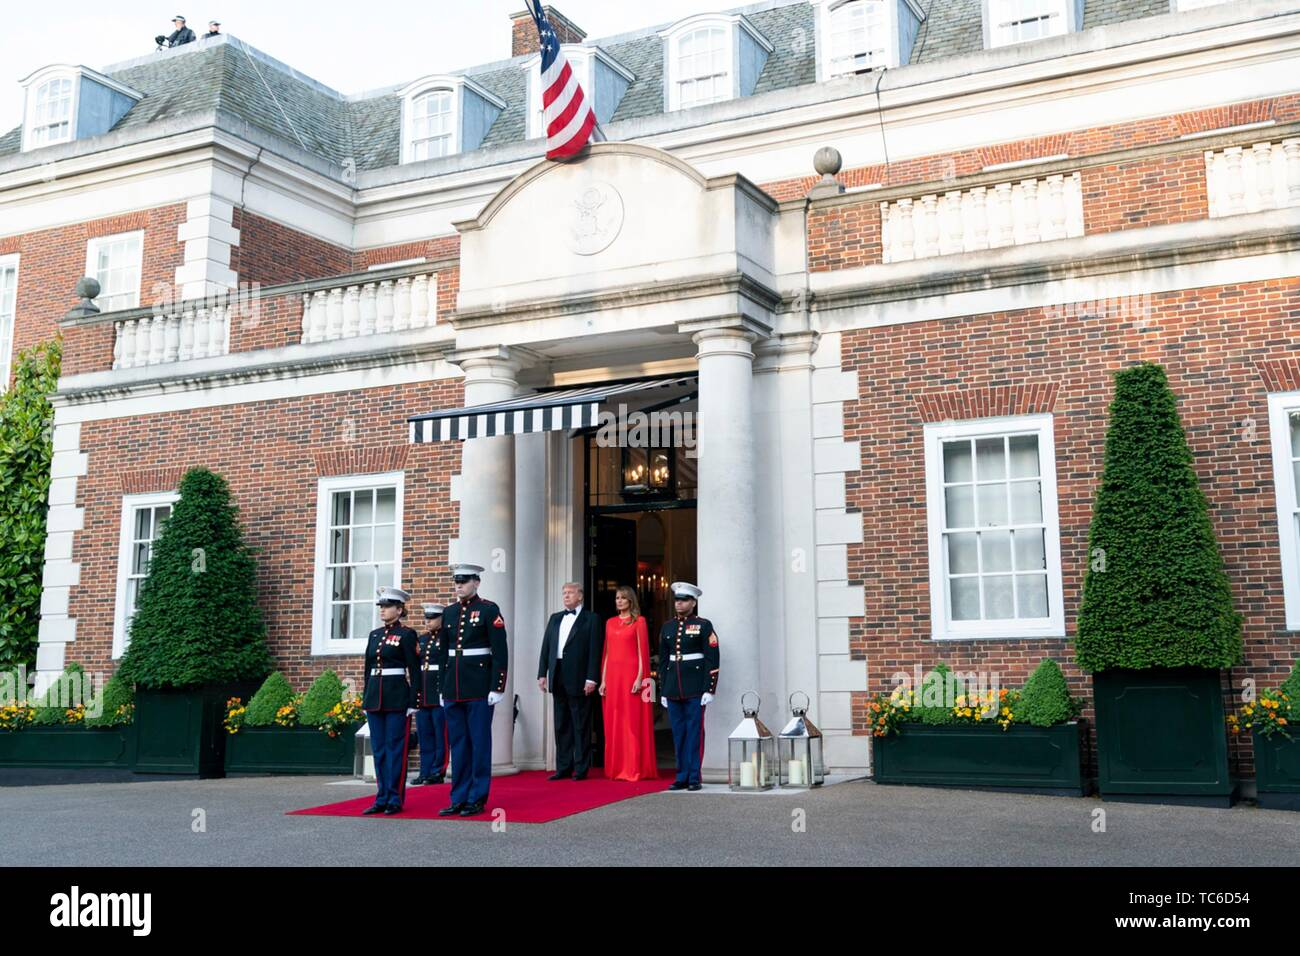 London, UK. 04th June, 2019. U.S President Donald Trump and First Lady Melania Trump wait to greet Prince Charles and the Duchess of Cornwall prior to a gala at Winfield House June 4, 2019 in London, England. Credit: Planetpix/Alamy Live News - Stock Image